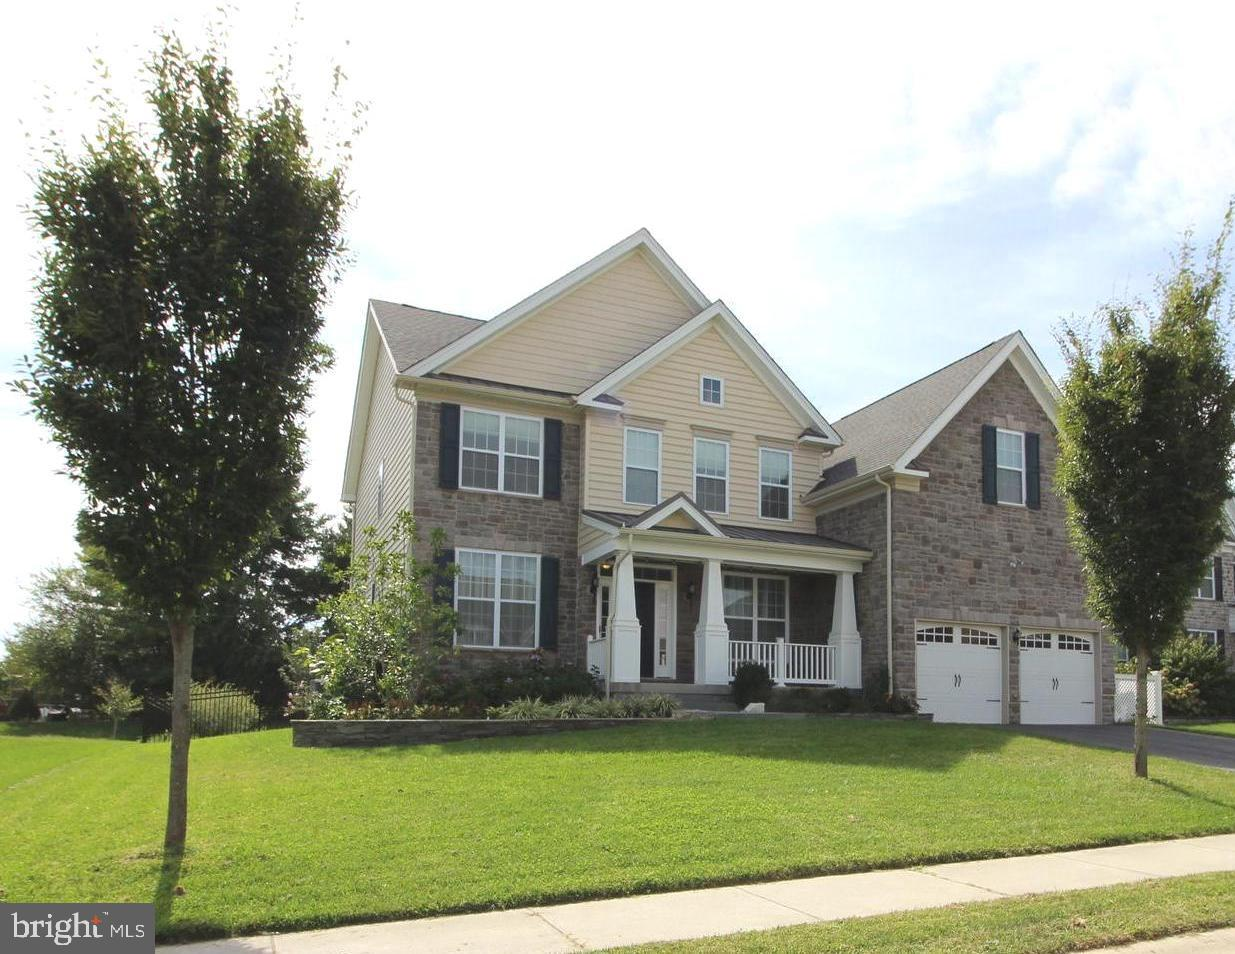 """Don't miss this spectacular 4 bedroom, 4.5 bath home in this beautiful Toll Brothers community!  This home has been upgraded throughout with a 3' bump out in the FR, over the garage for the MBrm and added basement space, 9' ceilings, Sun Room Addition and finished walk-out lower level with a full bathroom!  As you enter this stunning home, you will see upgraded hardwood flooring throughout most of the main level along with recessed lighting, crown molding, chair rail and wainscotting.  The open floor plan is amazing with a Living Room, formal Dining Room, Main Floor Office, Den or Playroom with bow window, two-story open Family Room with loads of natural lighting, floor to ceiling fireplace, raised hearth and Powder Room.  Just wait until you see the amazing eat-in Kitchen which has been upgraded with beautiful granite, backsplash, 42"""" cabinets, upgraded stainless appliances, pantry closet, center island with breakfast bar, pull-out trash cabinet, double oven, built-in microwave and refrigerator included.  The convenient Laundry Room has built-in cherry cabinets, granite at the sink area and ceramic tiled floor.  The Sun Room addition leads you to the custom brick paver patio with firepit and built-in seating, fenced yard and private views.  The second floor has upgraded carpet, a grand MBedroom Suite  which has been bumped out over the garage with two walk-in closets, tray ceiling, private full custom upgraded bathroom with double sinks/vanities, garden tub, separate toilet room, separate desk/vanity, double shower, ceramic tile and walk-in closet.  There is another Prince or Princess Suite with private full upgraded bathroom, two additional bedrooms and another full upgraded bathroom.  The walk-out lower level is finished with a gigantic  Recreation Room, full upgraded bathroom, separate workshop and separate storage area.  The custom upgrades are too many to list here, but some other features are:  upgraded electrical system to 480 amps, alarm system, three zones"""